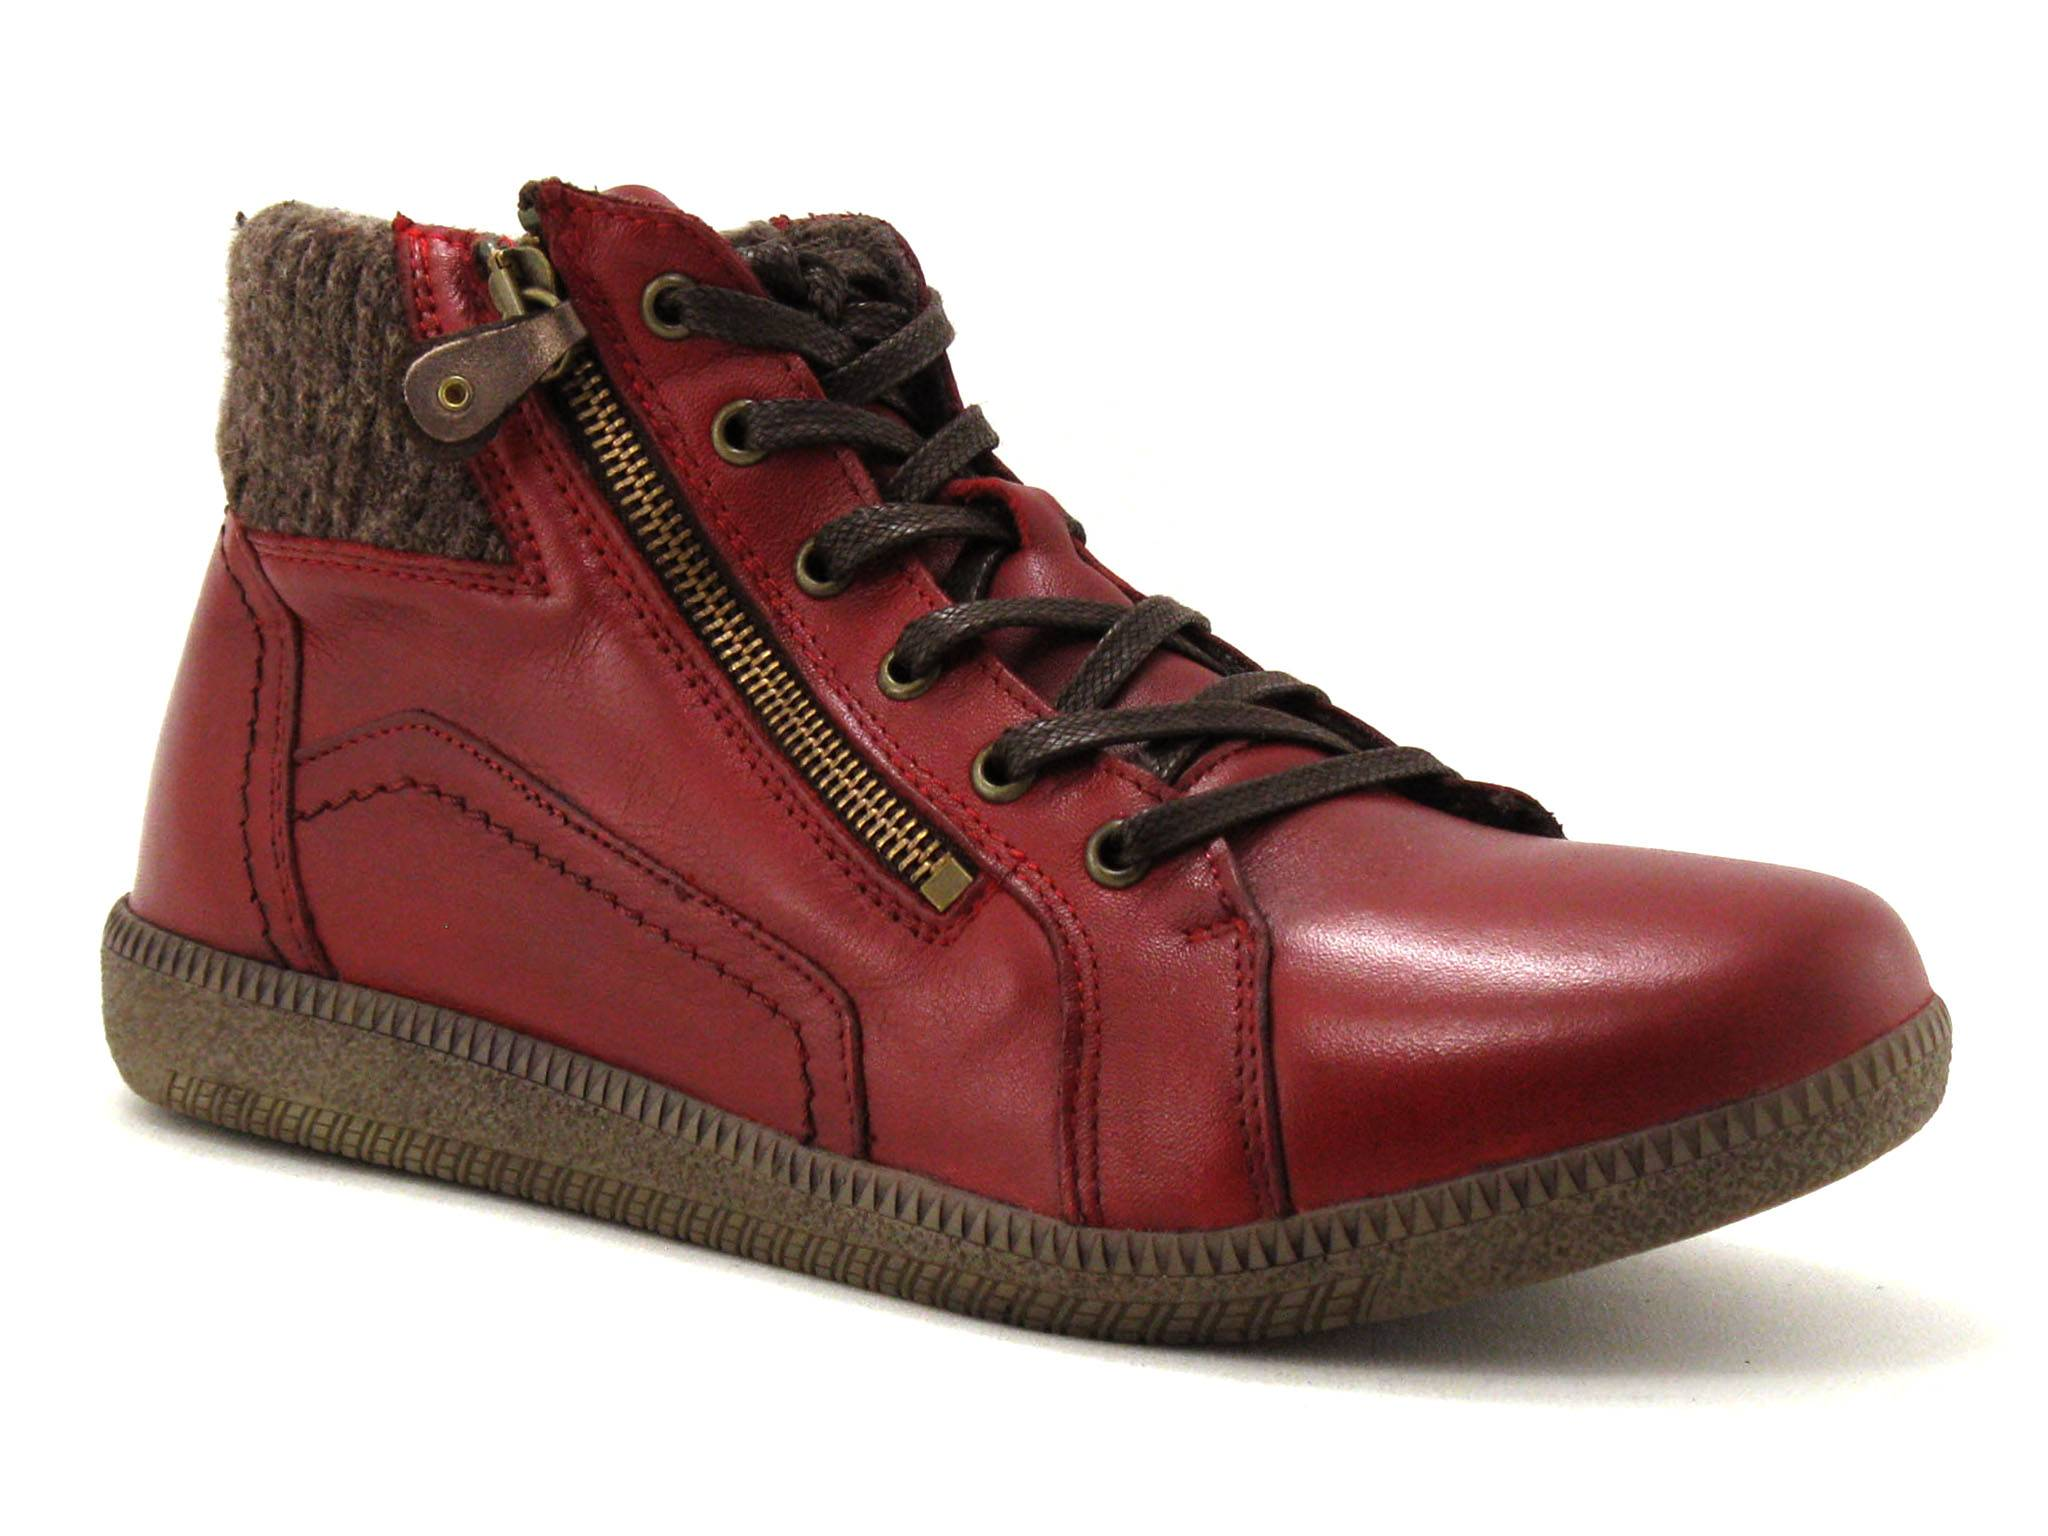 Moran's Chaussure montante Femme Moran's - Rouge - Point. 36,37,38,39,40,41